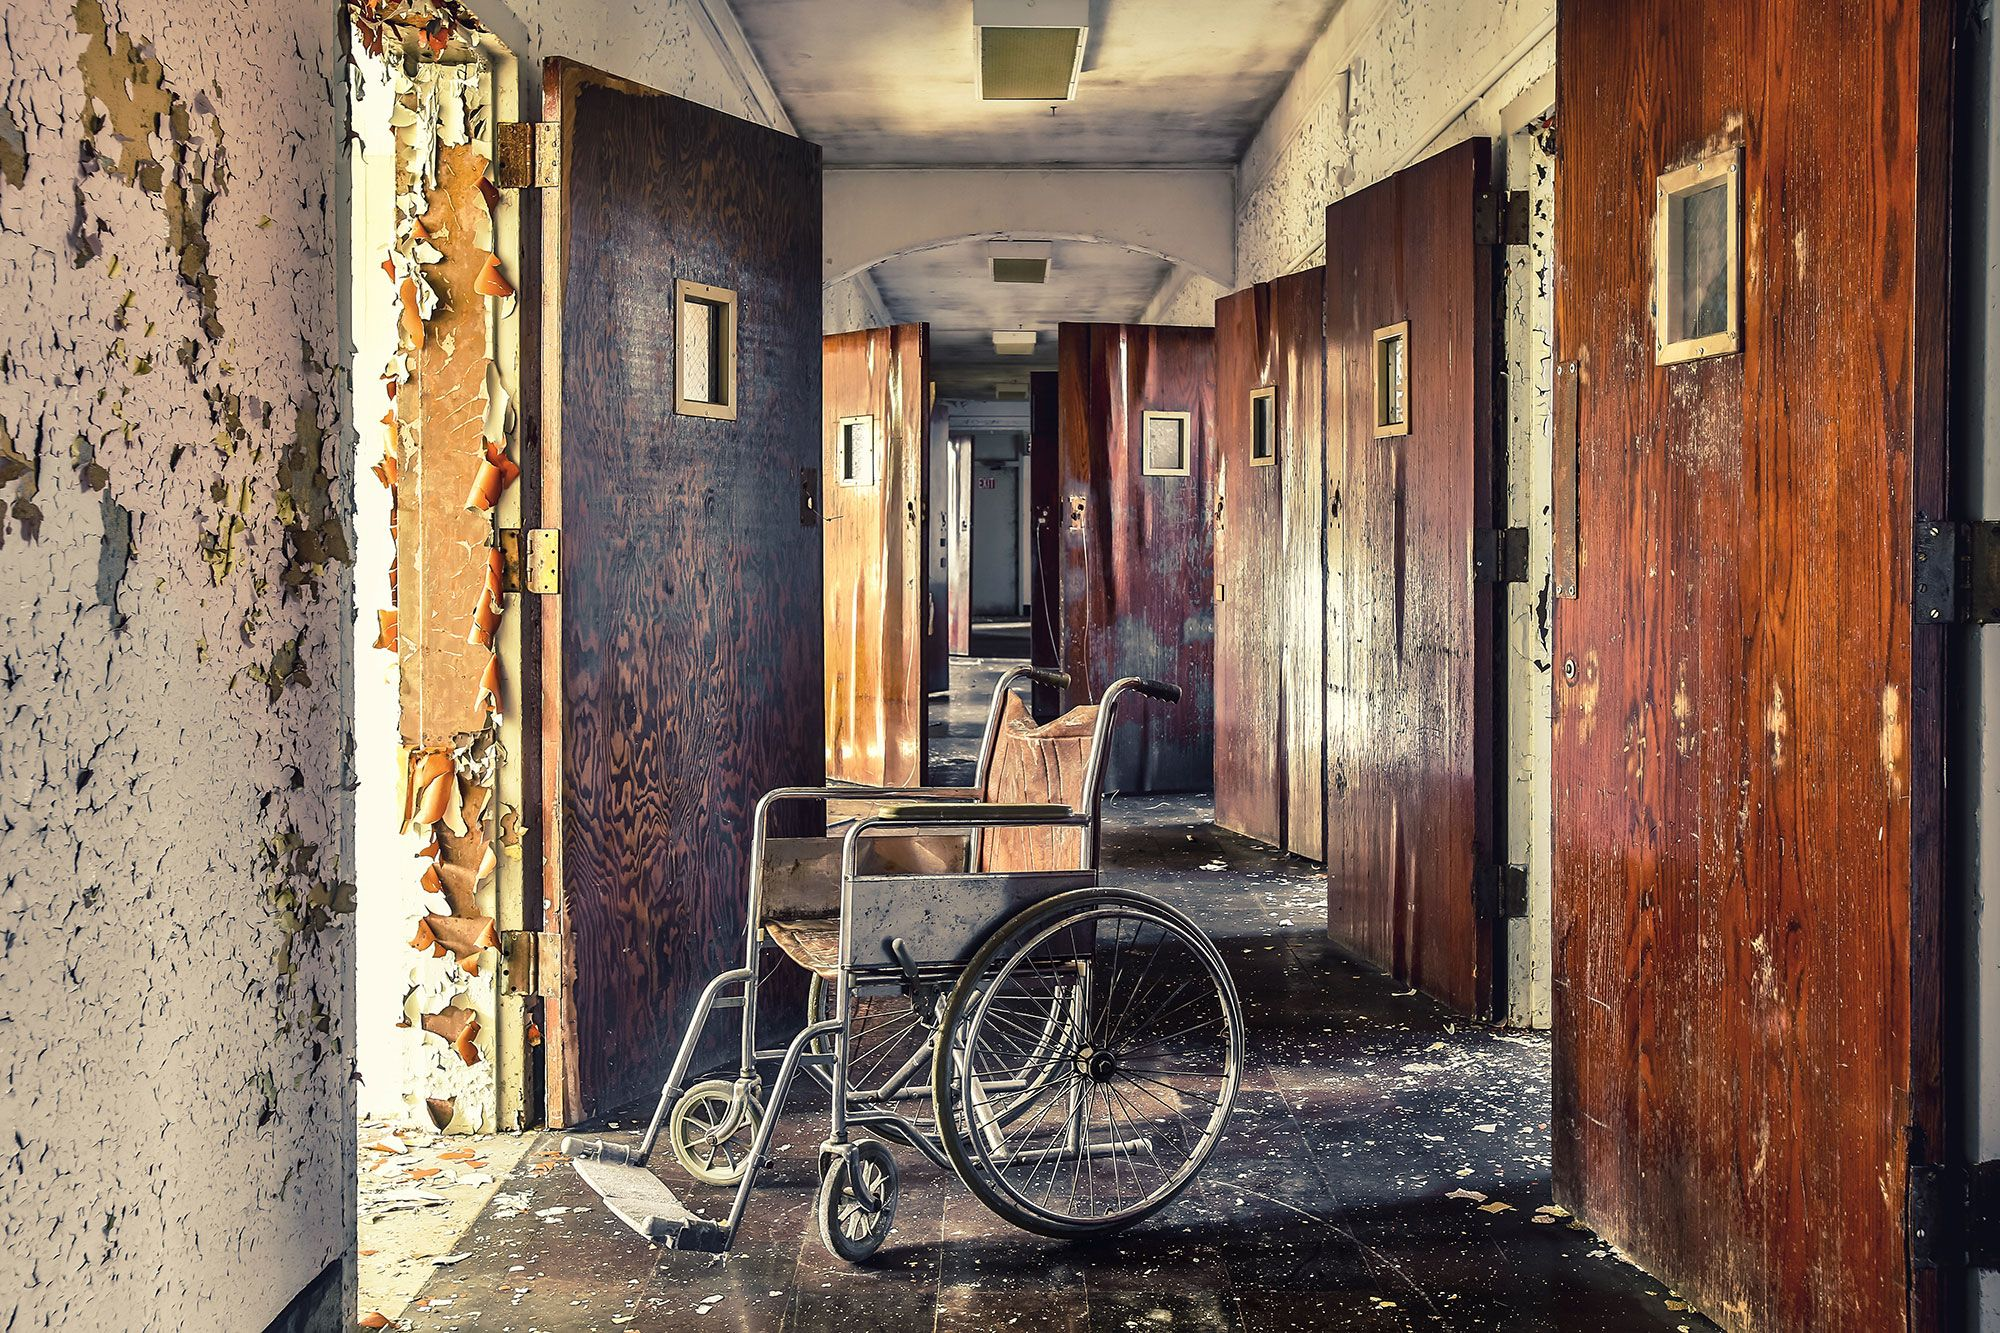 20 Haunting Photos Of Abandoned Asylums In The United States